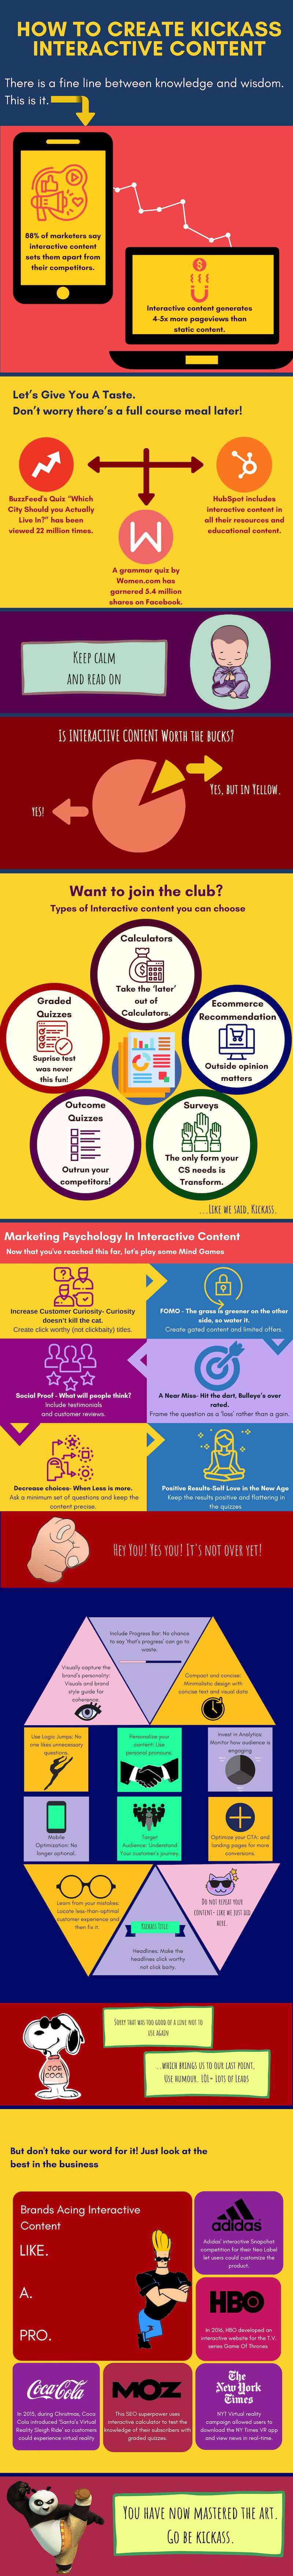 Infographic looks at how to create better interactive content